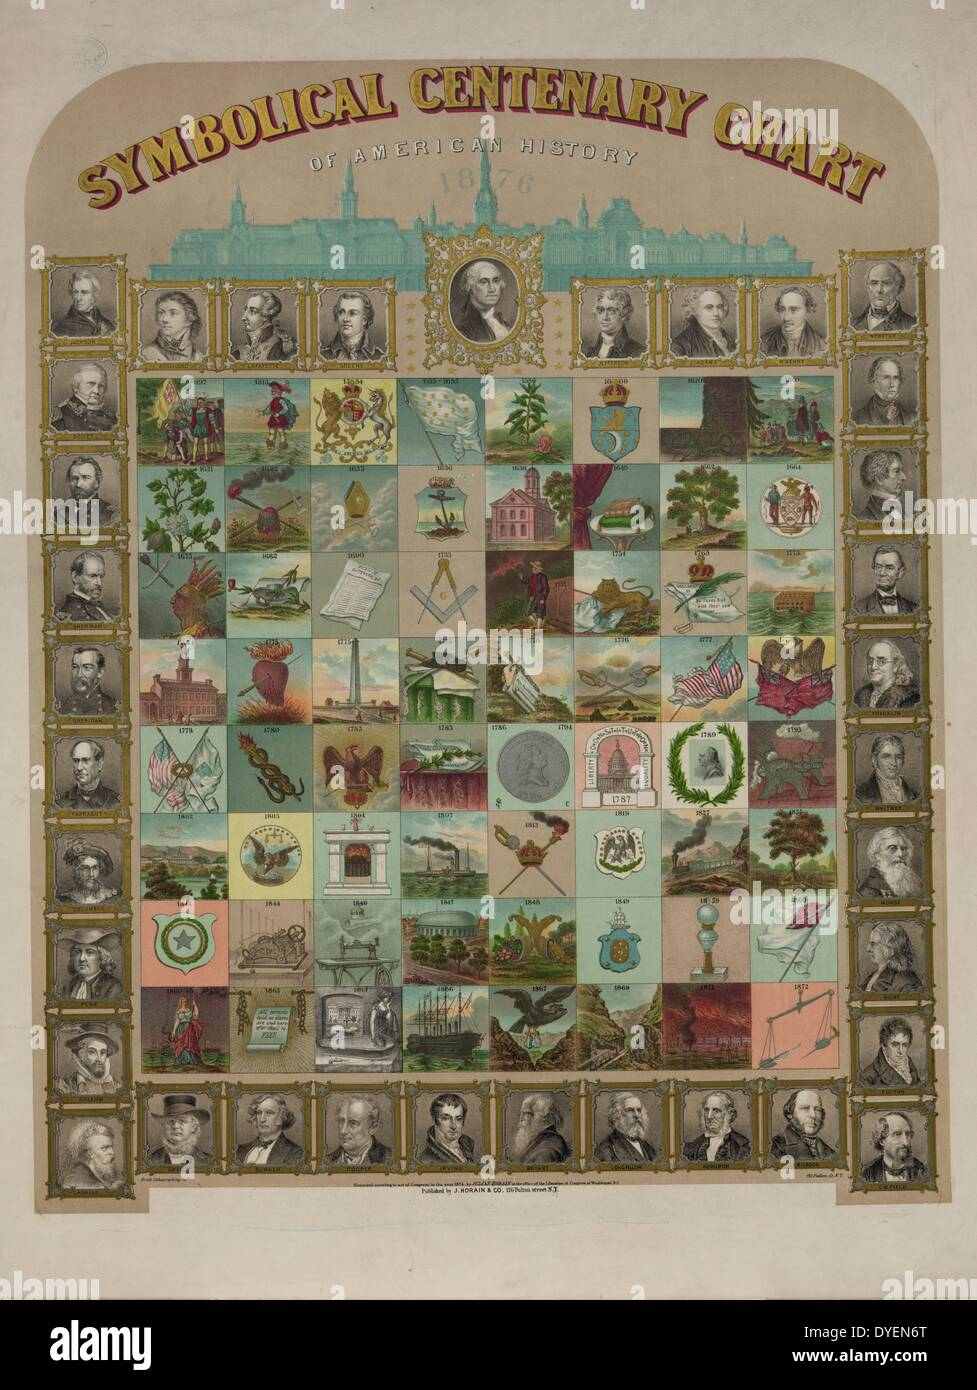 Symbolical centenary chart of American history by the Brett Lithographing Company. 1874. - Stock Image